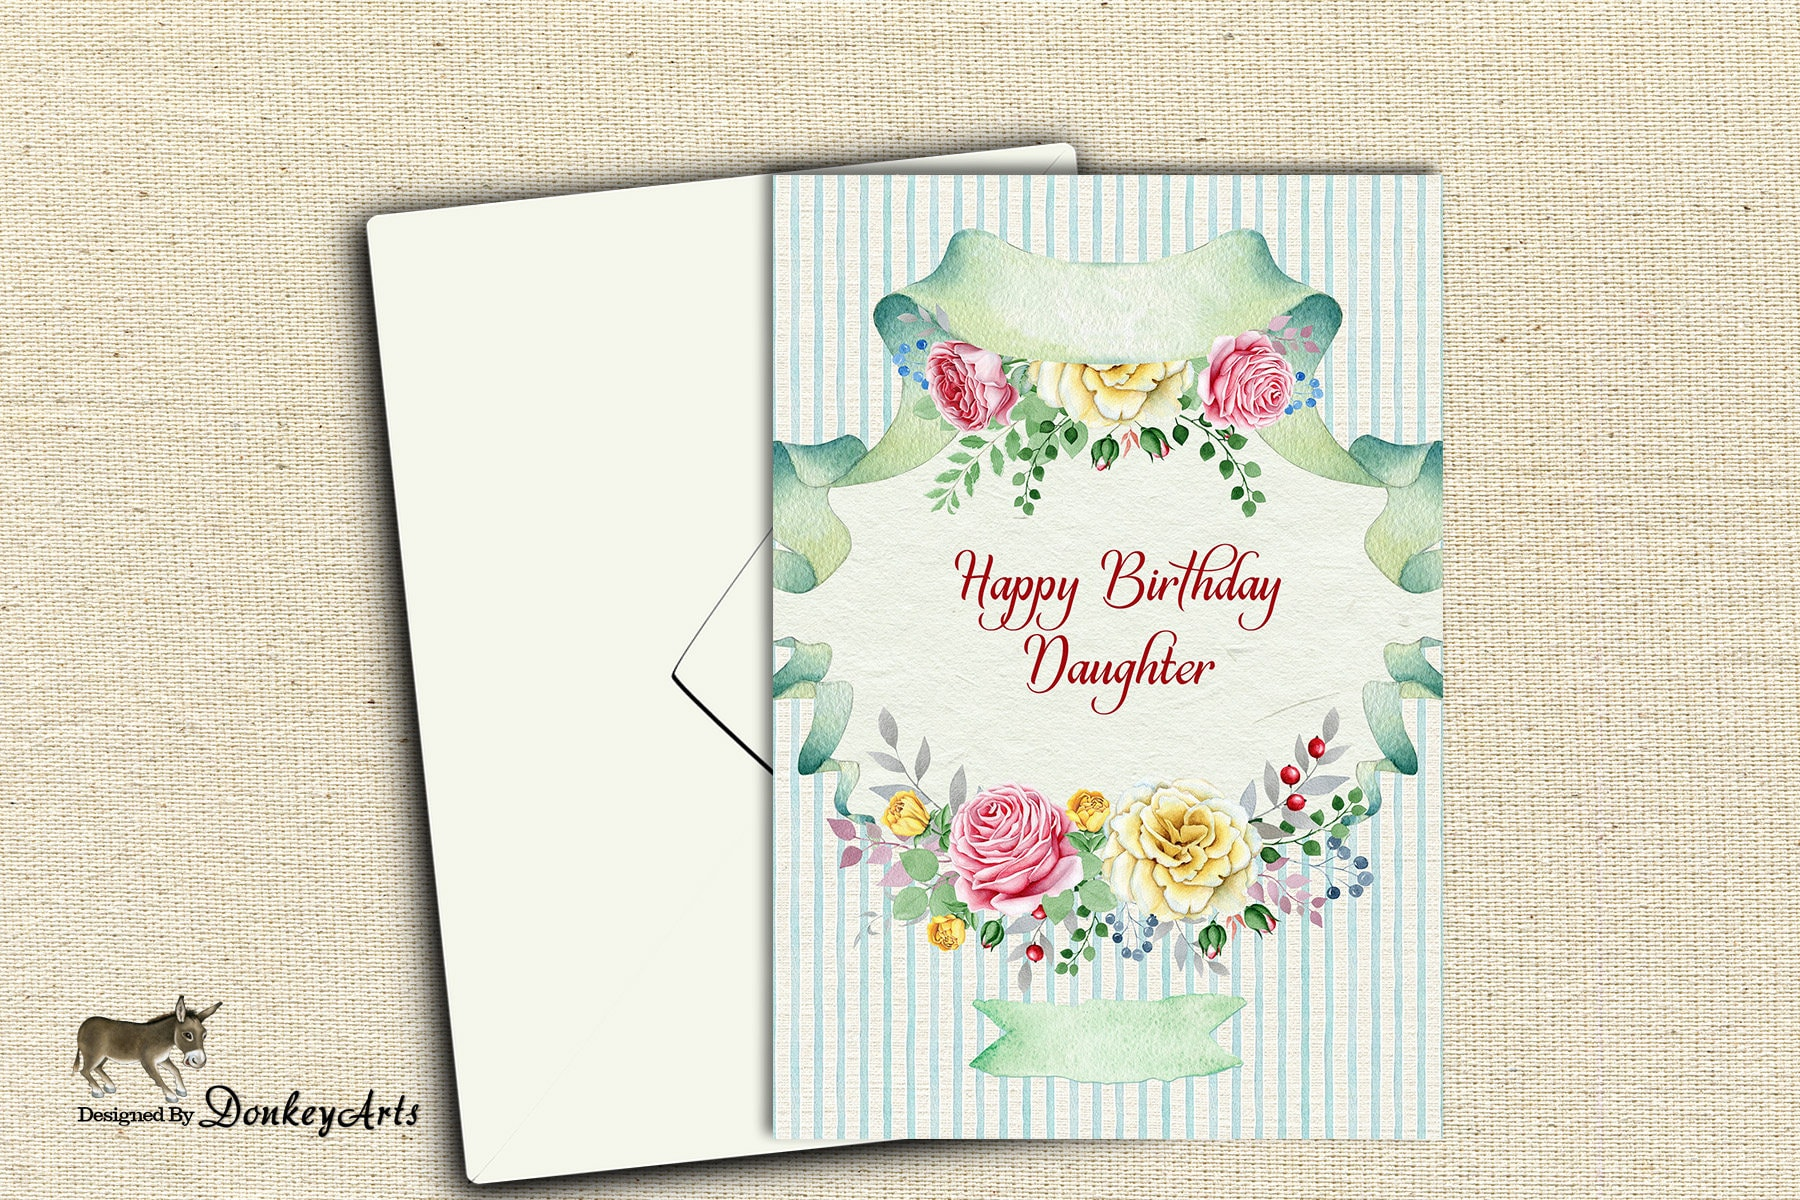 Happy Birthday Daughter Card With Flowers Printable Birthday